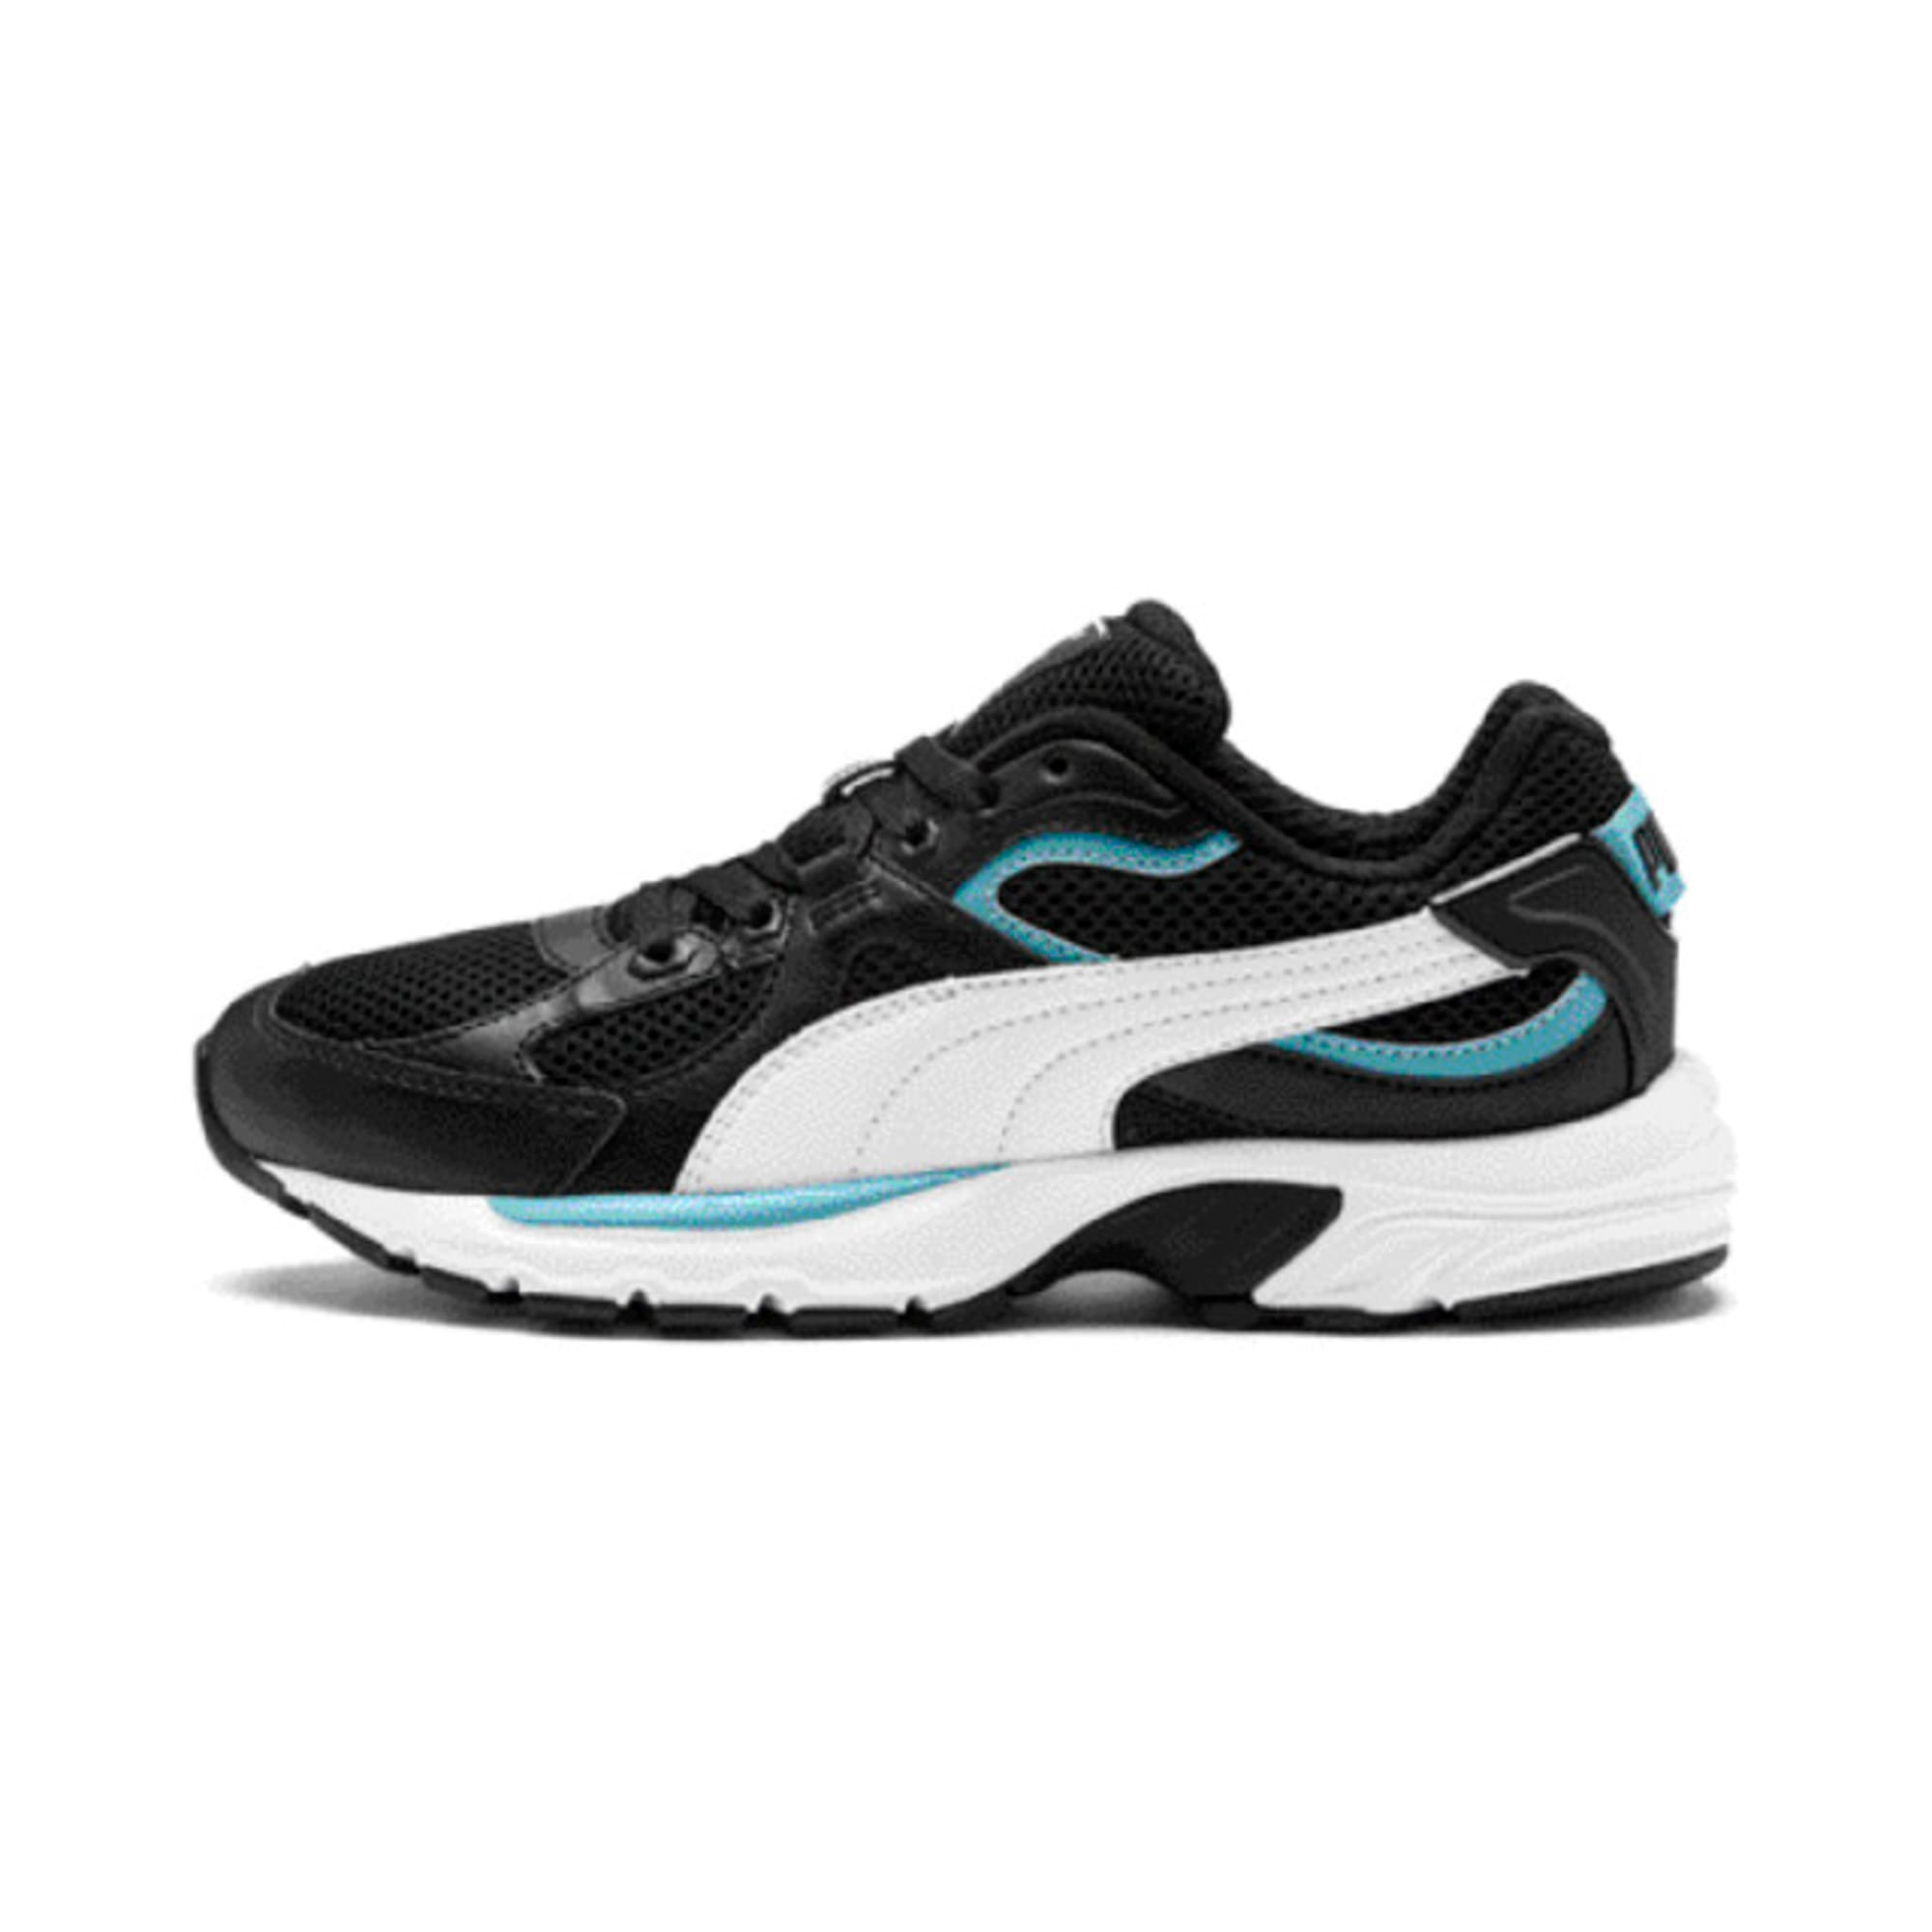 Thumbnail 1 of Axis Plus 90s Trainers, Puma Black-White-Milky Blue, medium-IND